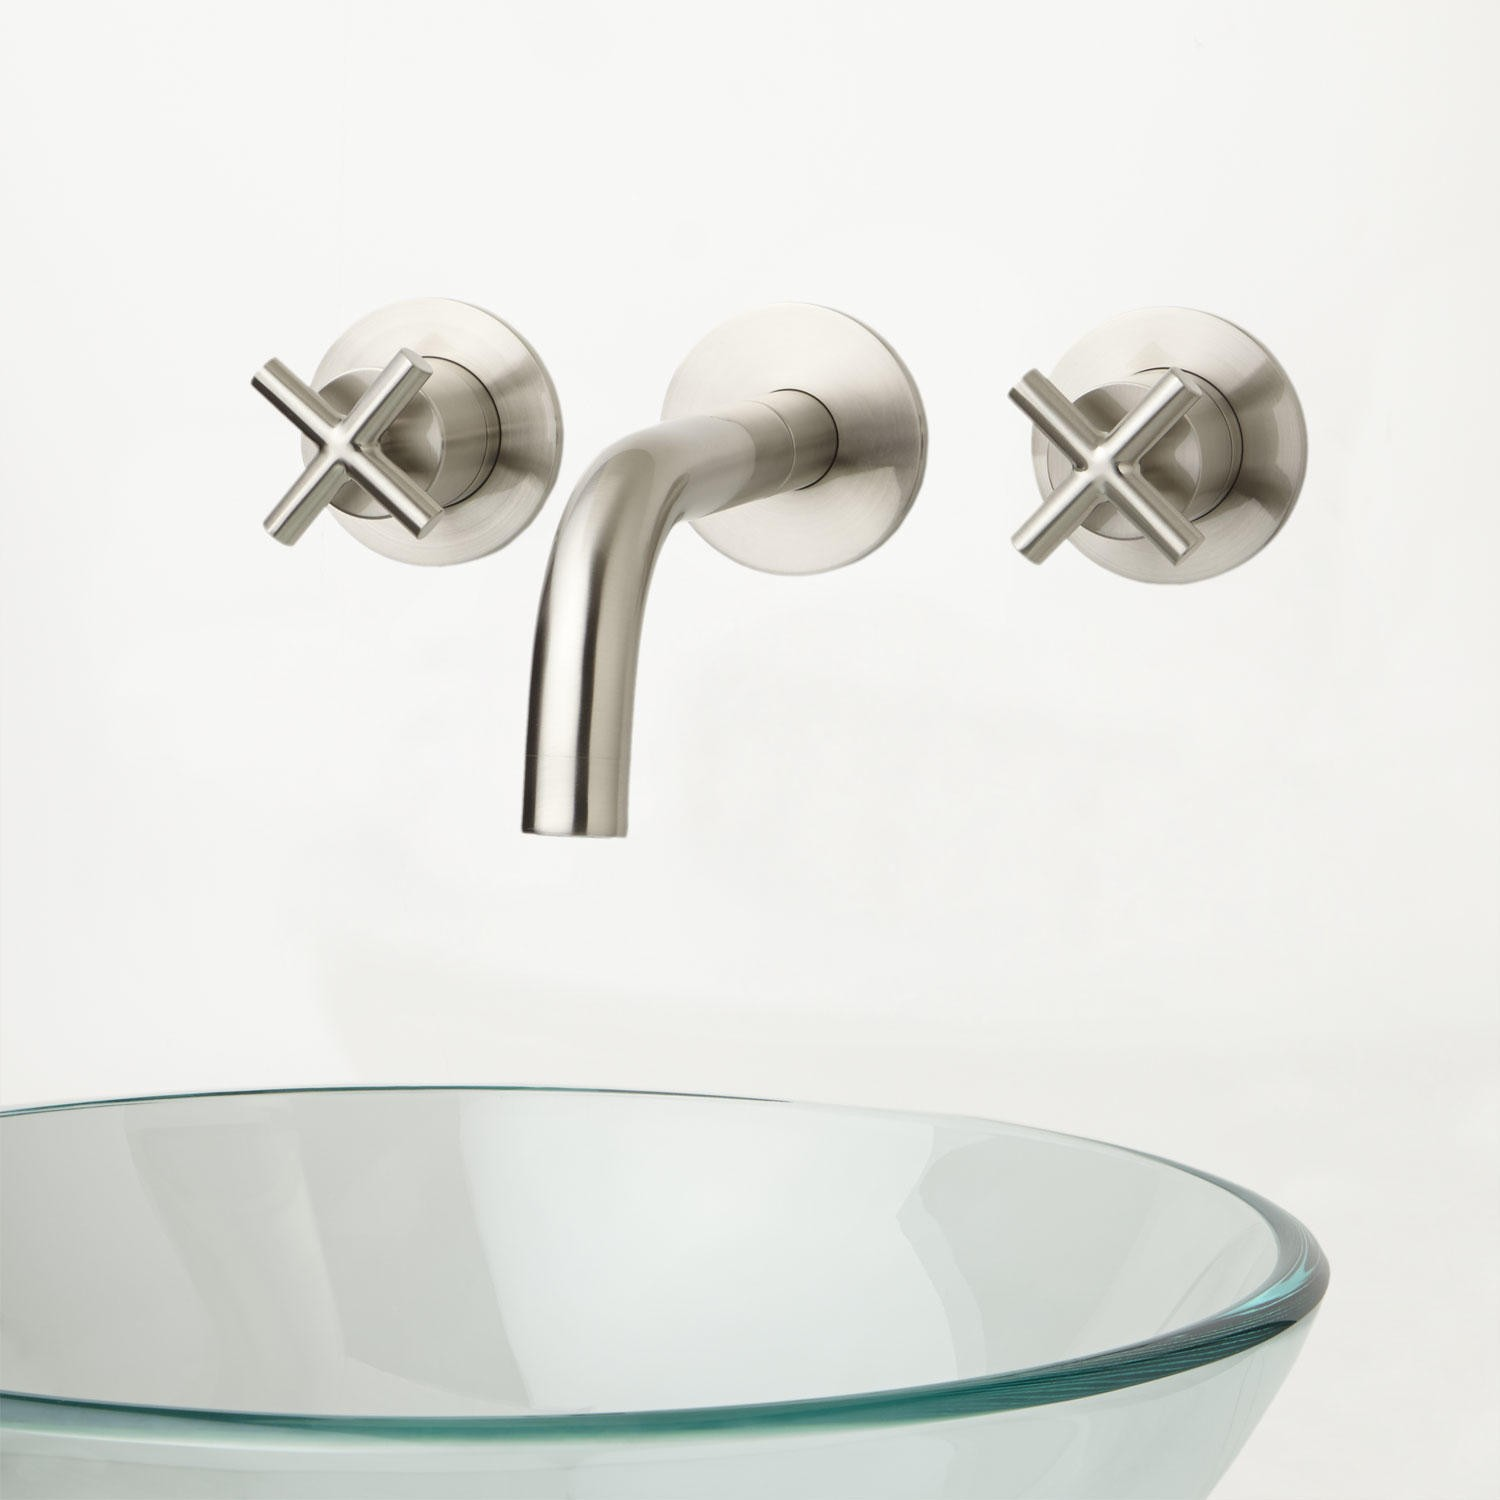 Pfister Parisa Bathroom Faucet   Download How To Fix A Leaky Bathroom Sink  Faucet Double Handle